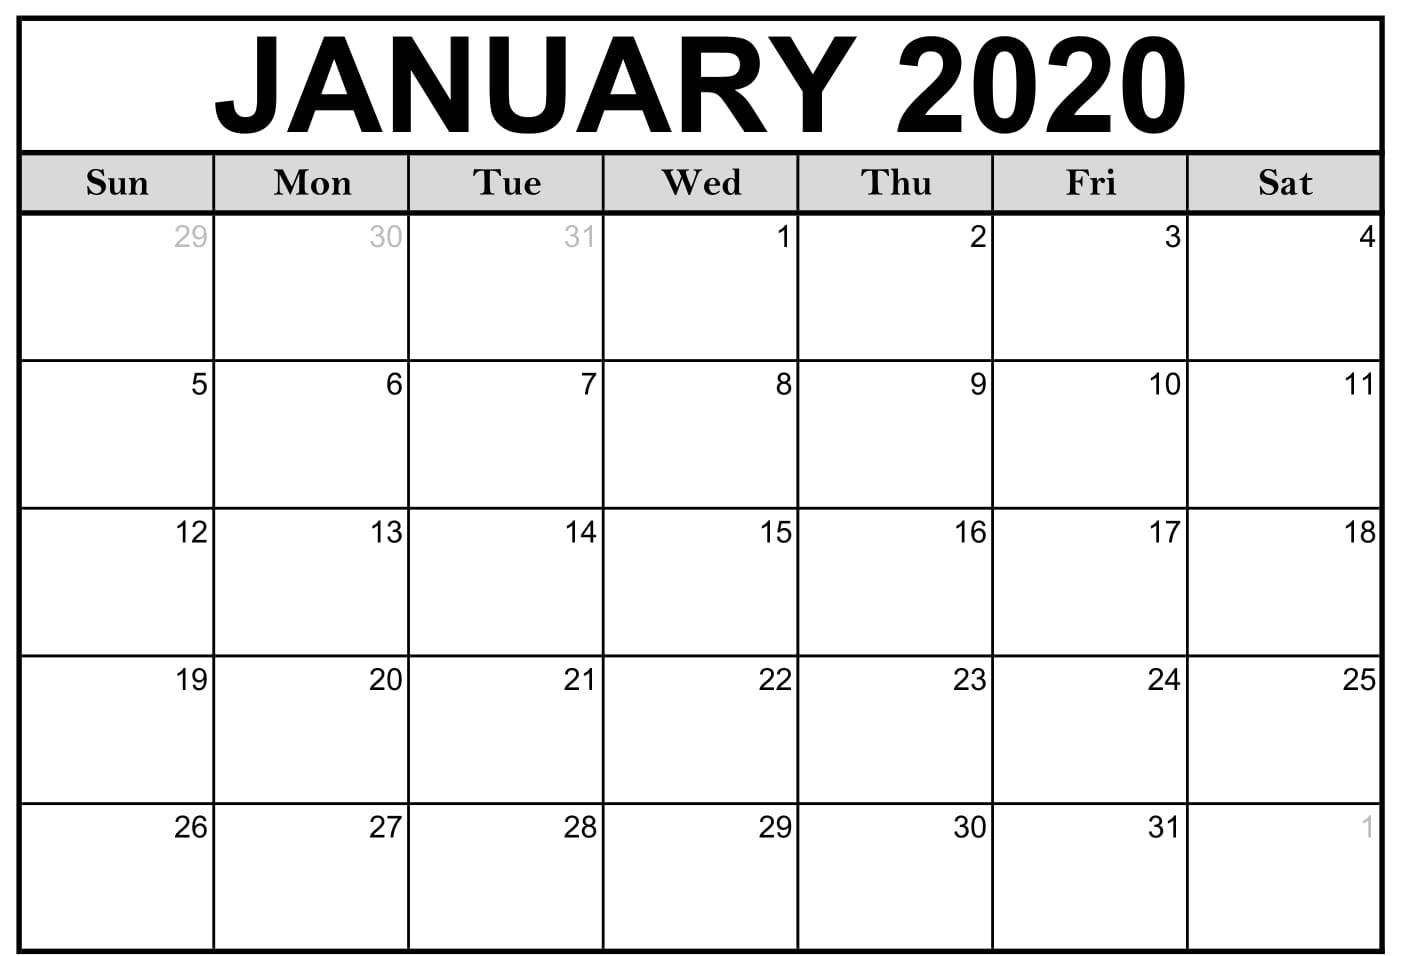 January Calendar 2020 Template  Yatay.horizonconsulting.co pertaining to January 2020 Calendar 123Calendars